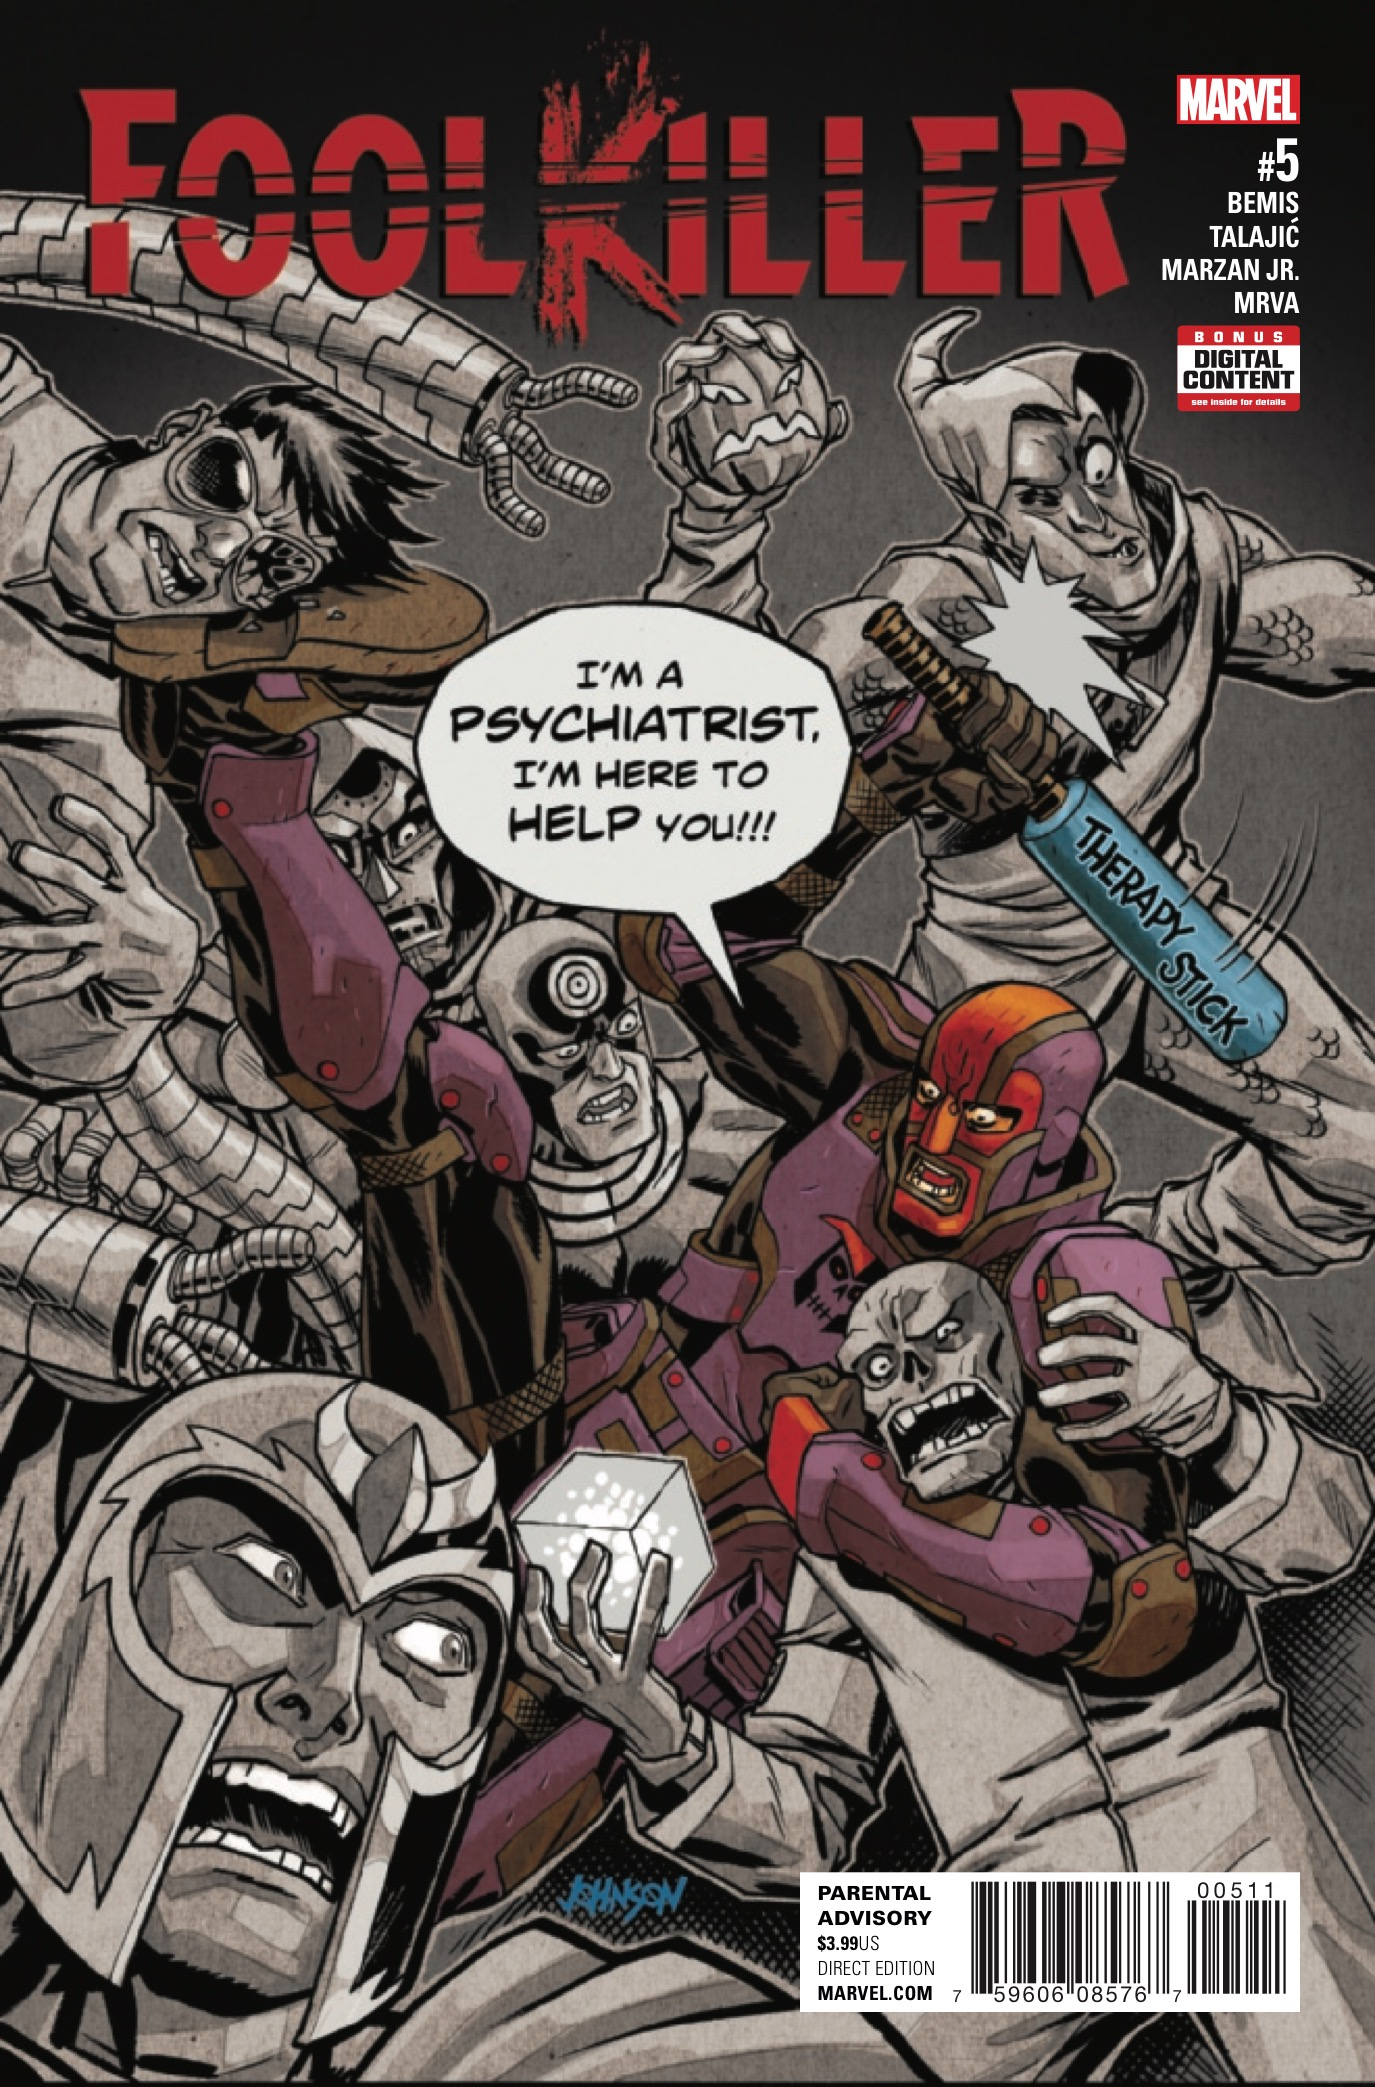 Foolkiller #5 Review